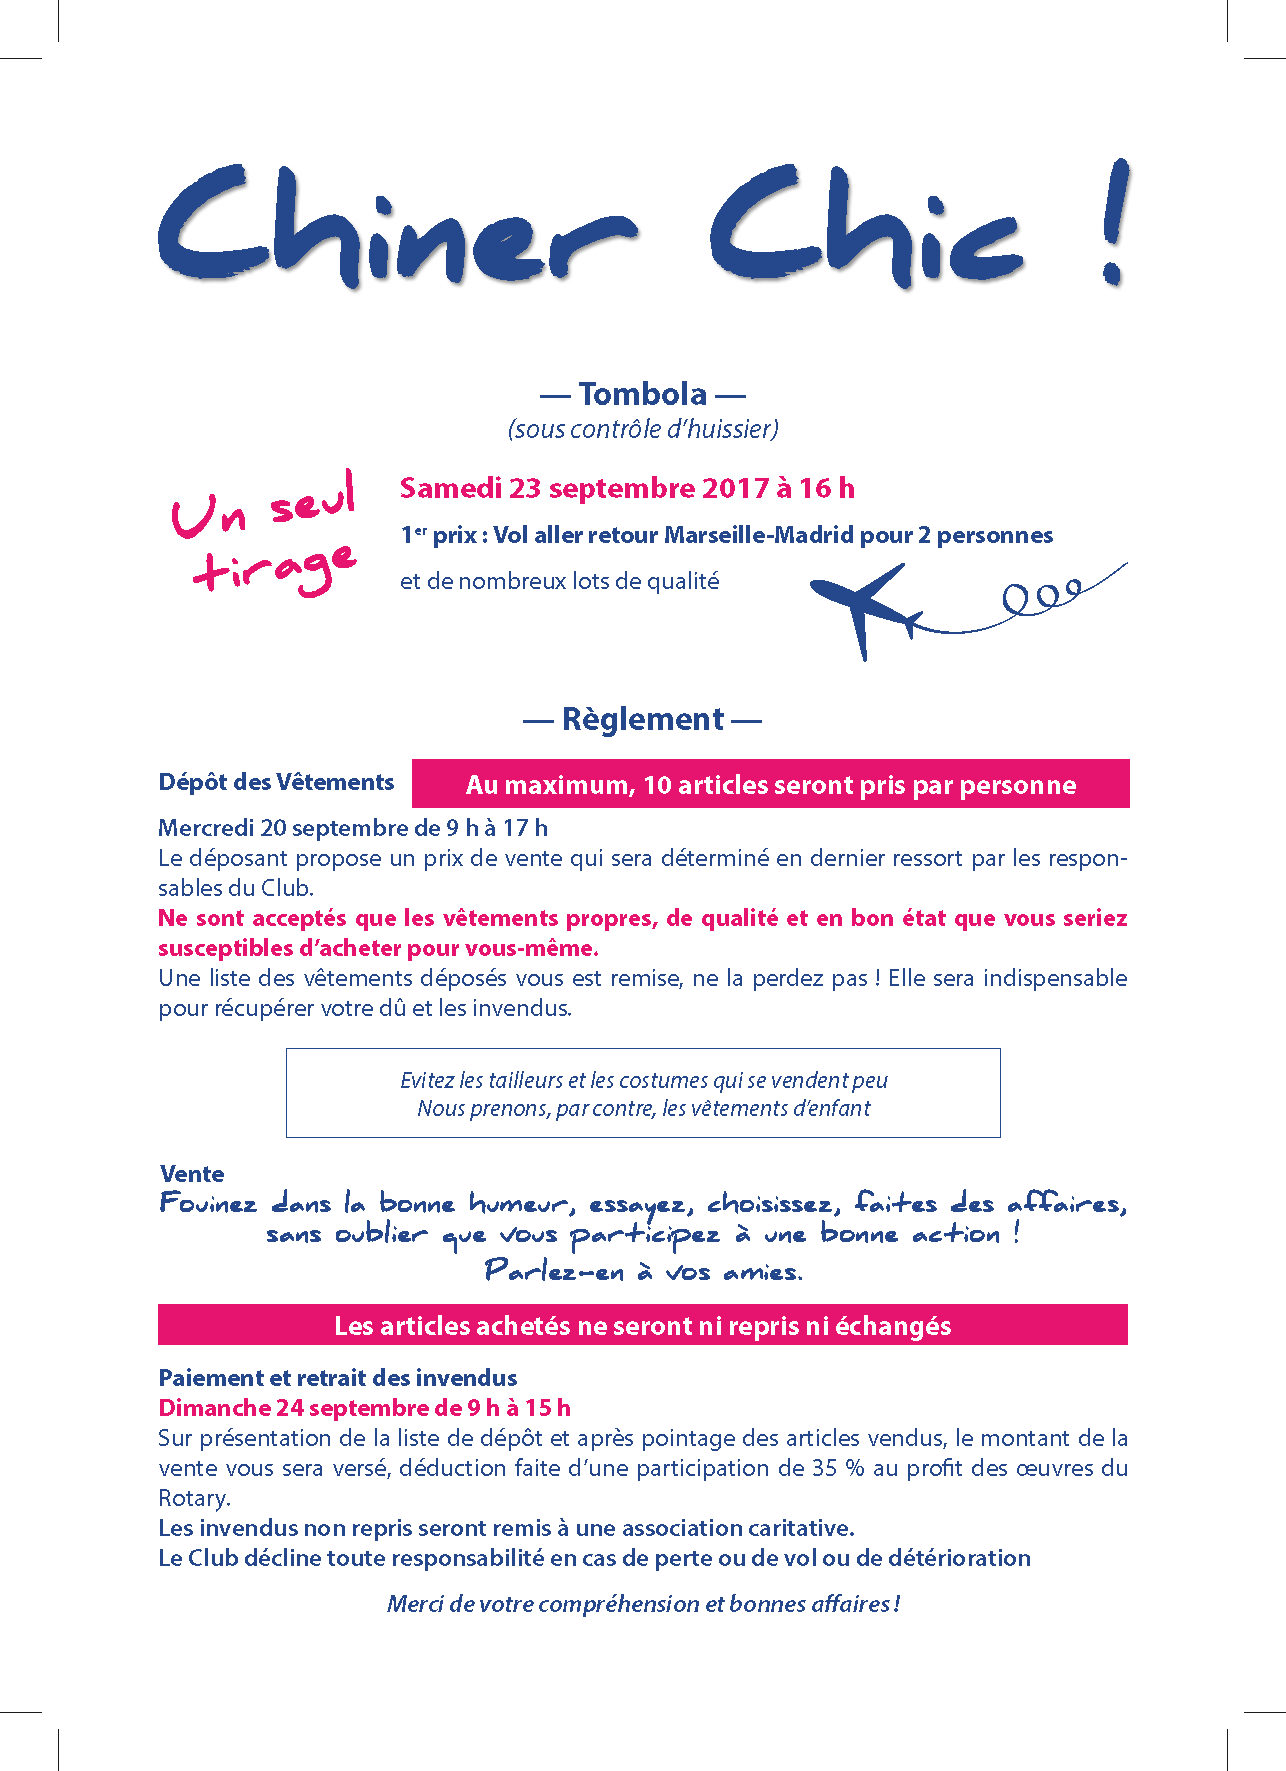 Chiner Chic flyer_Page_2